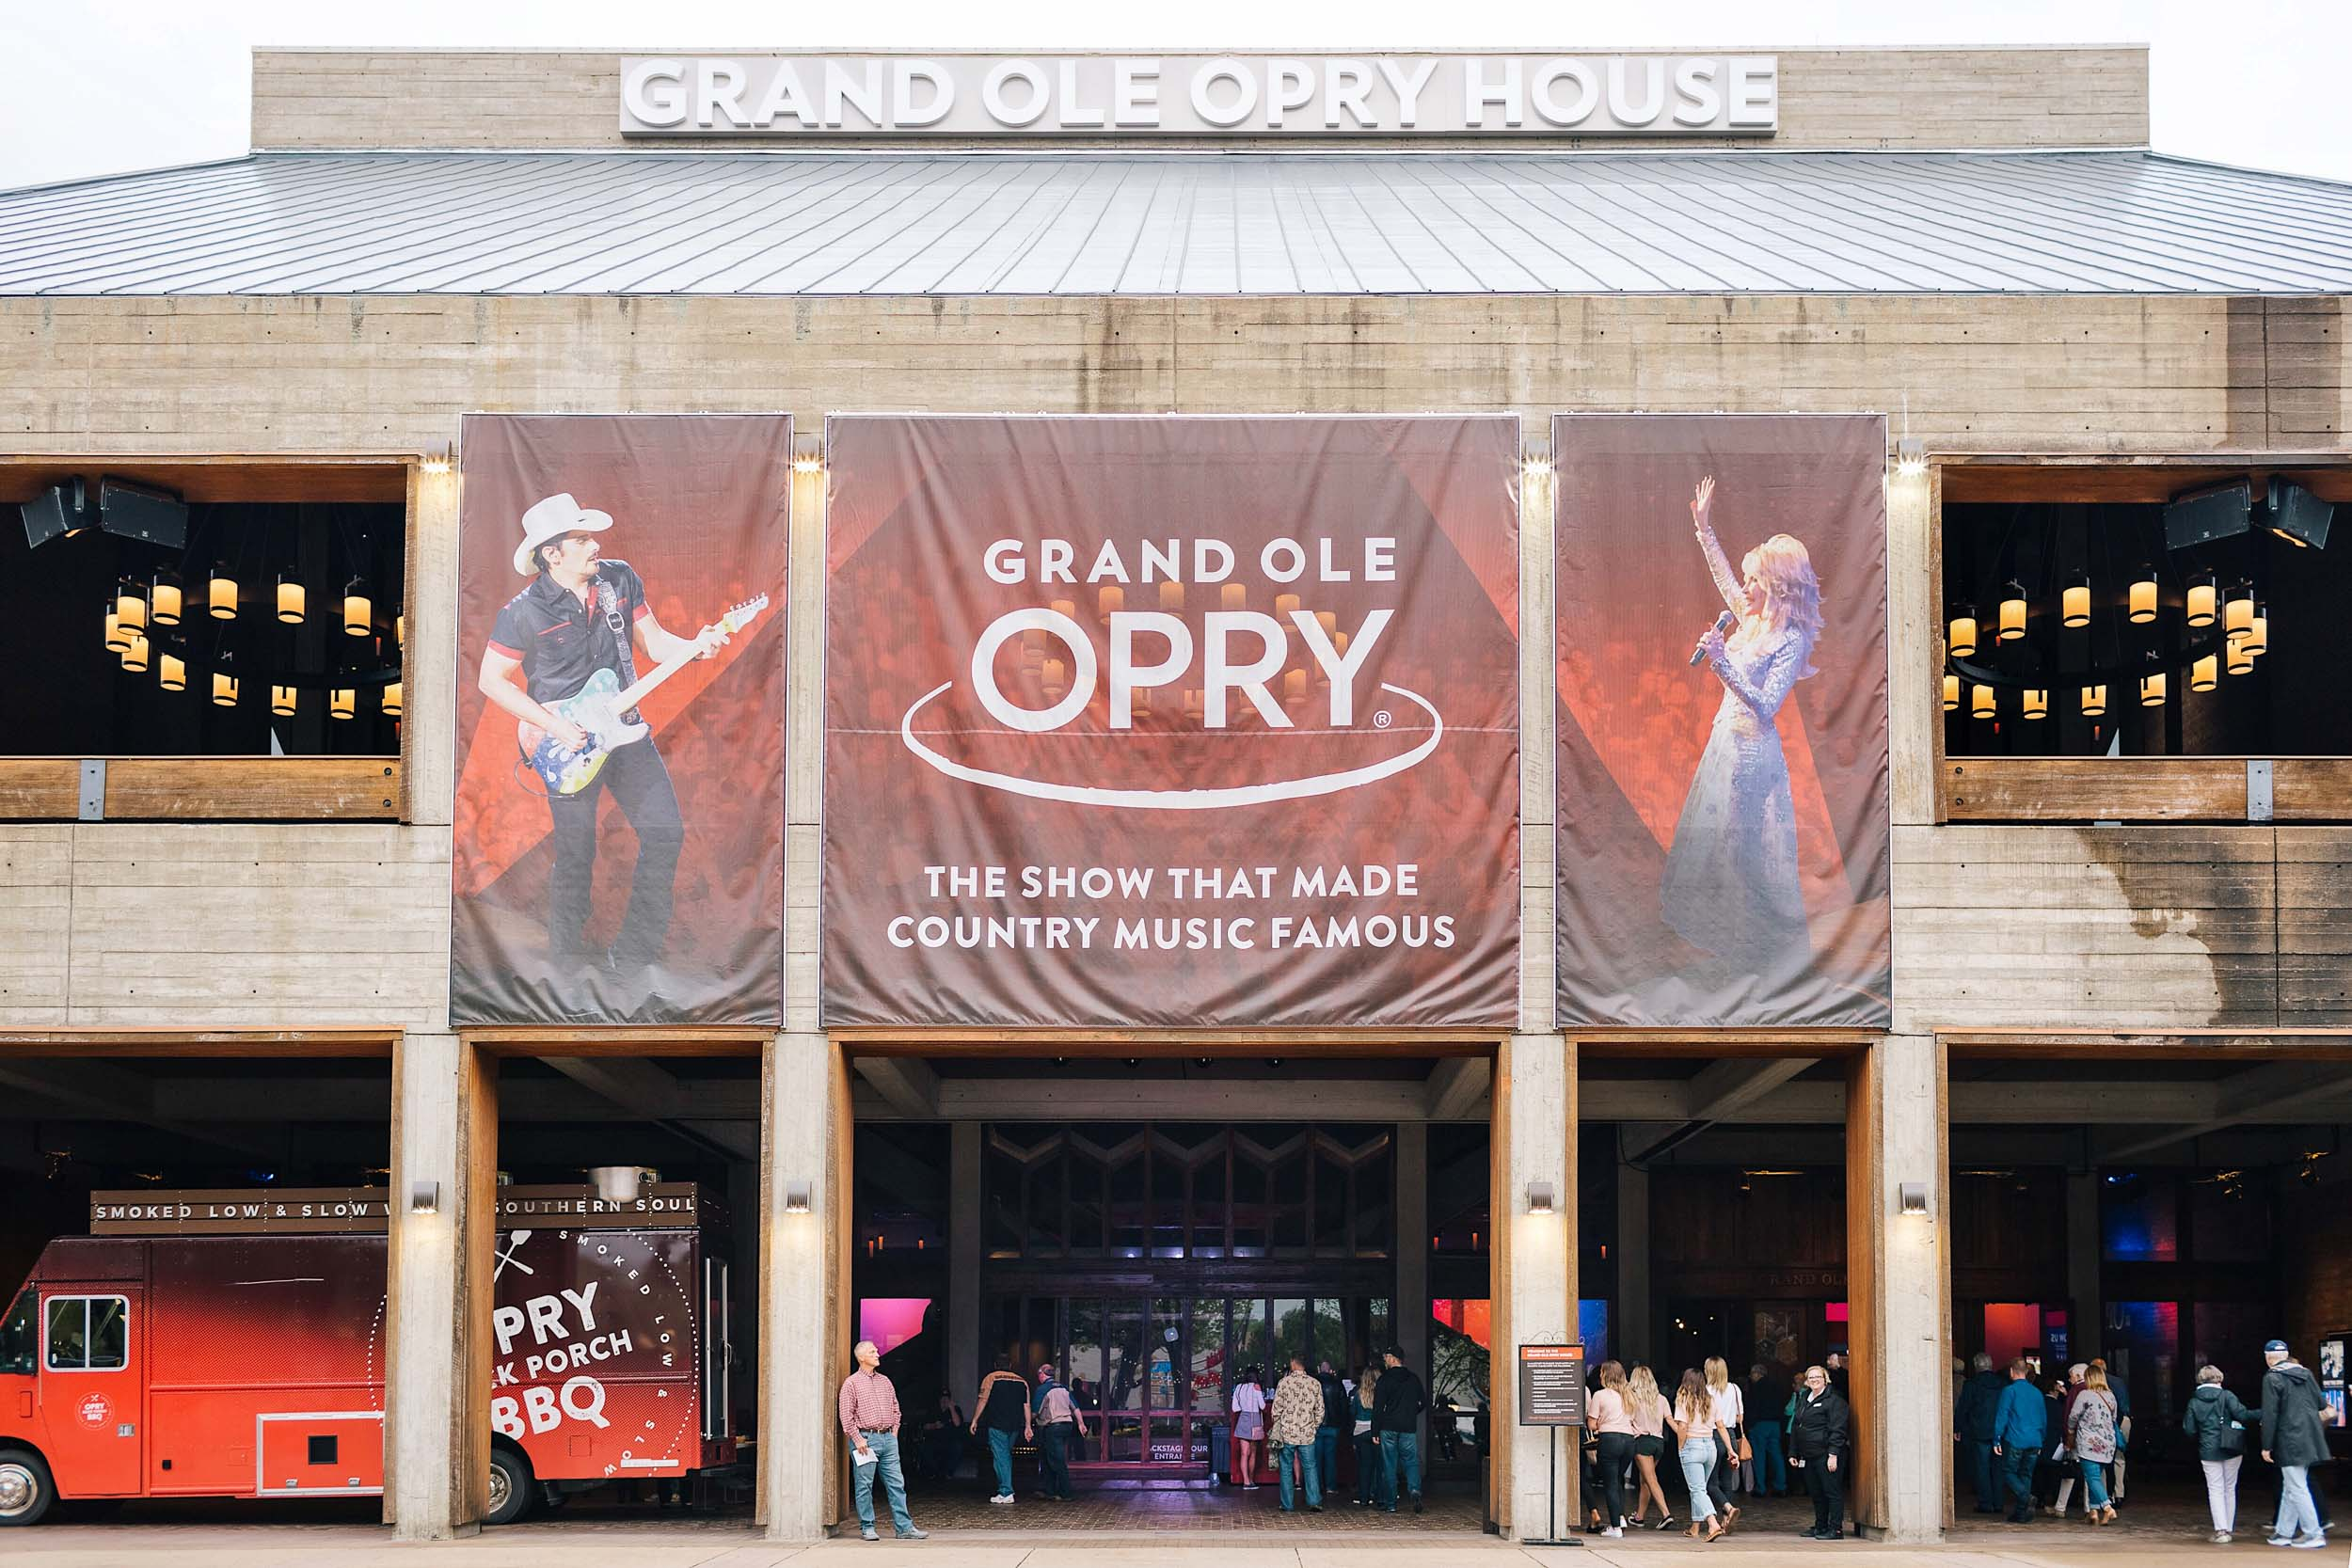 Grand Ole Opry, the show that made country music famous!